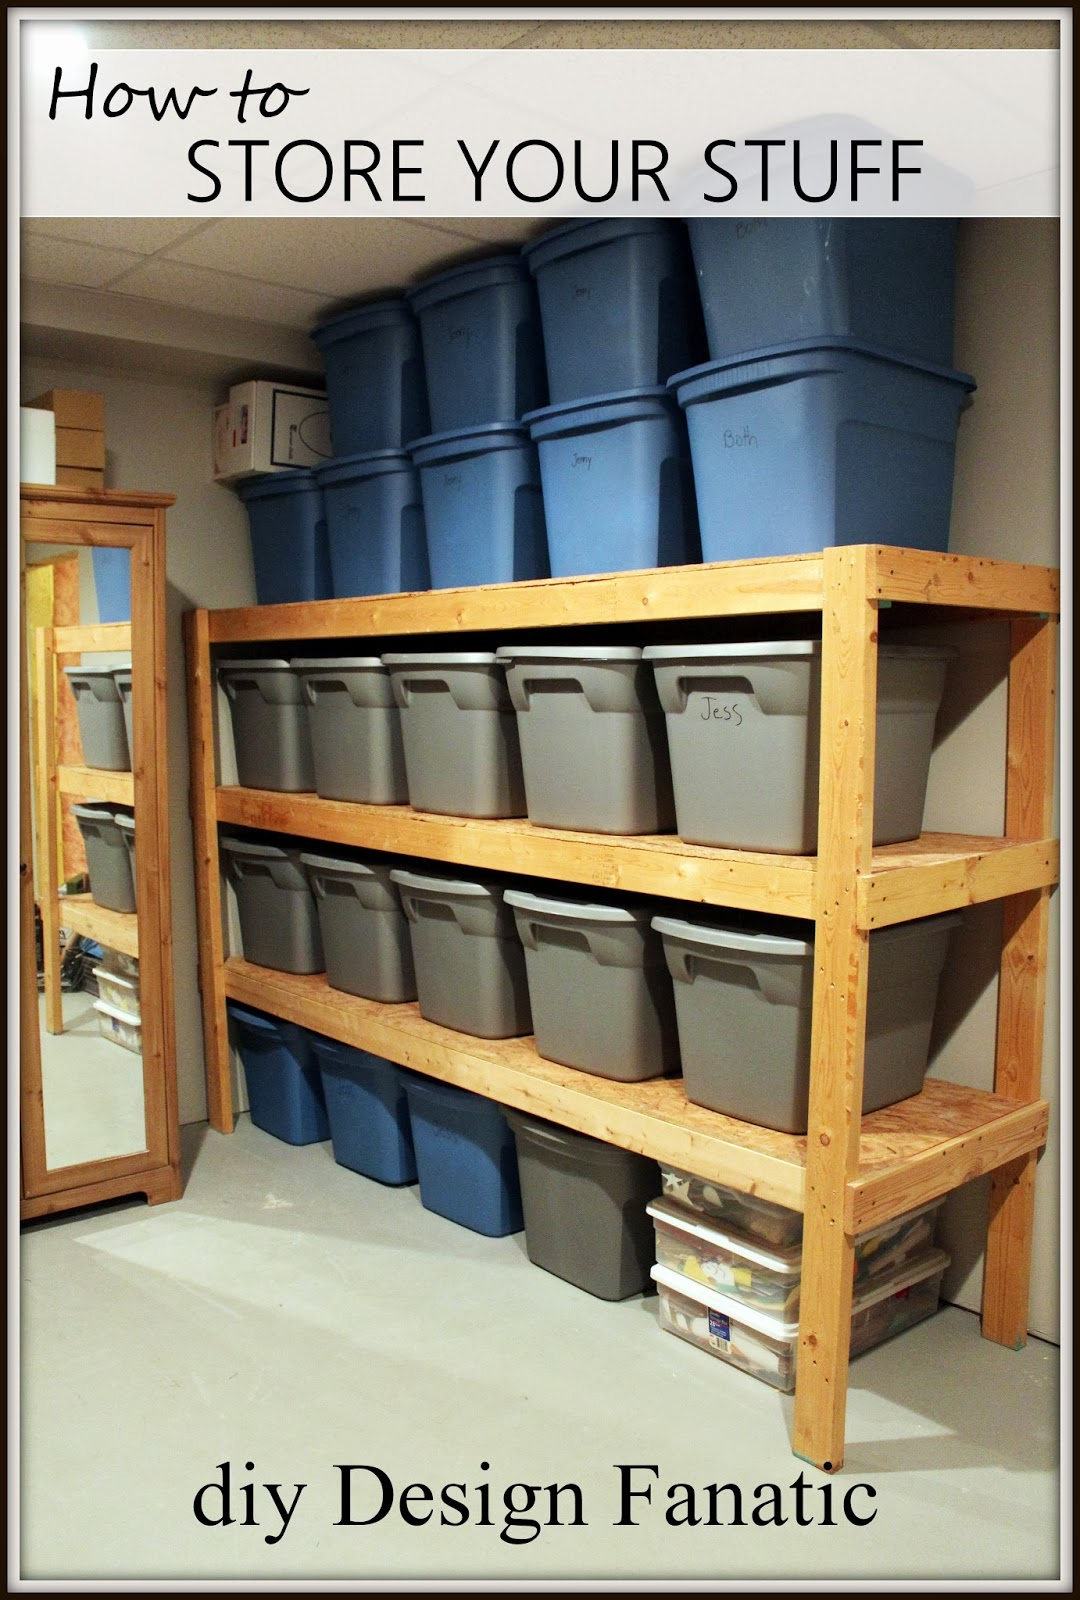 Woodworking storage shelf plans basement PDF Free Download